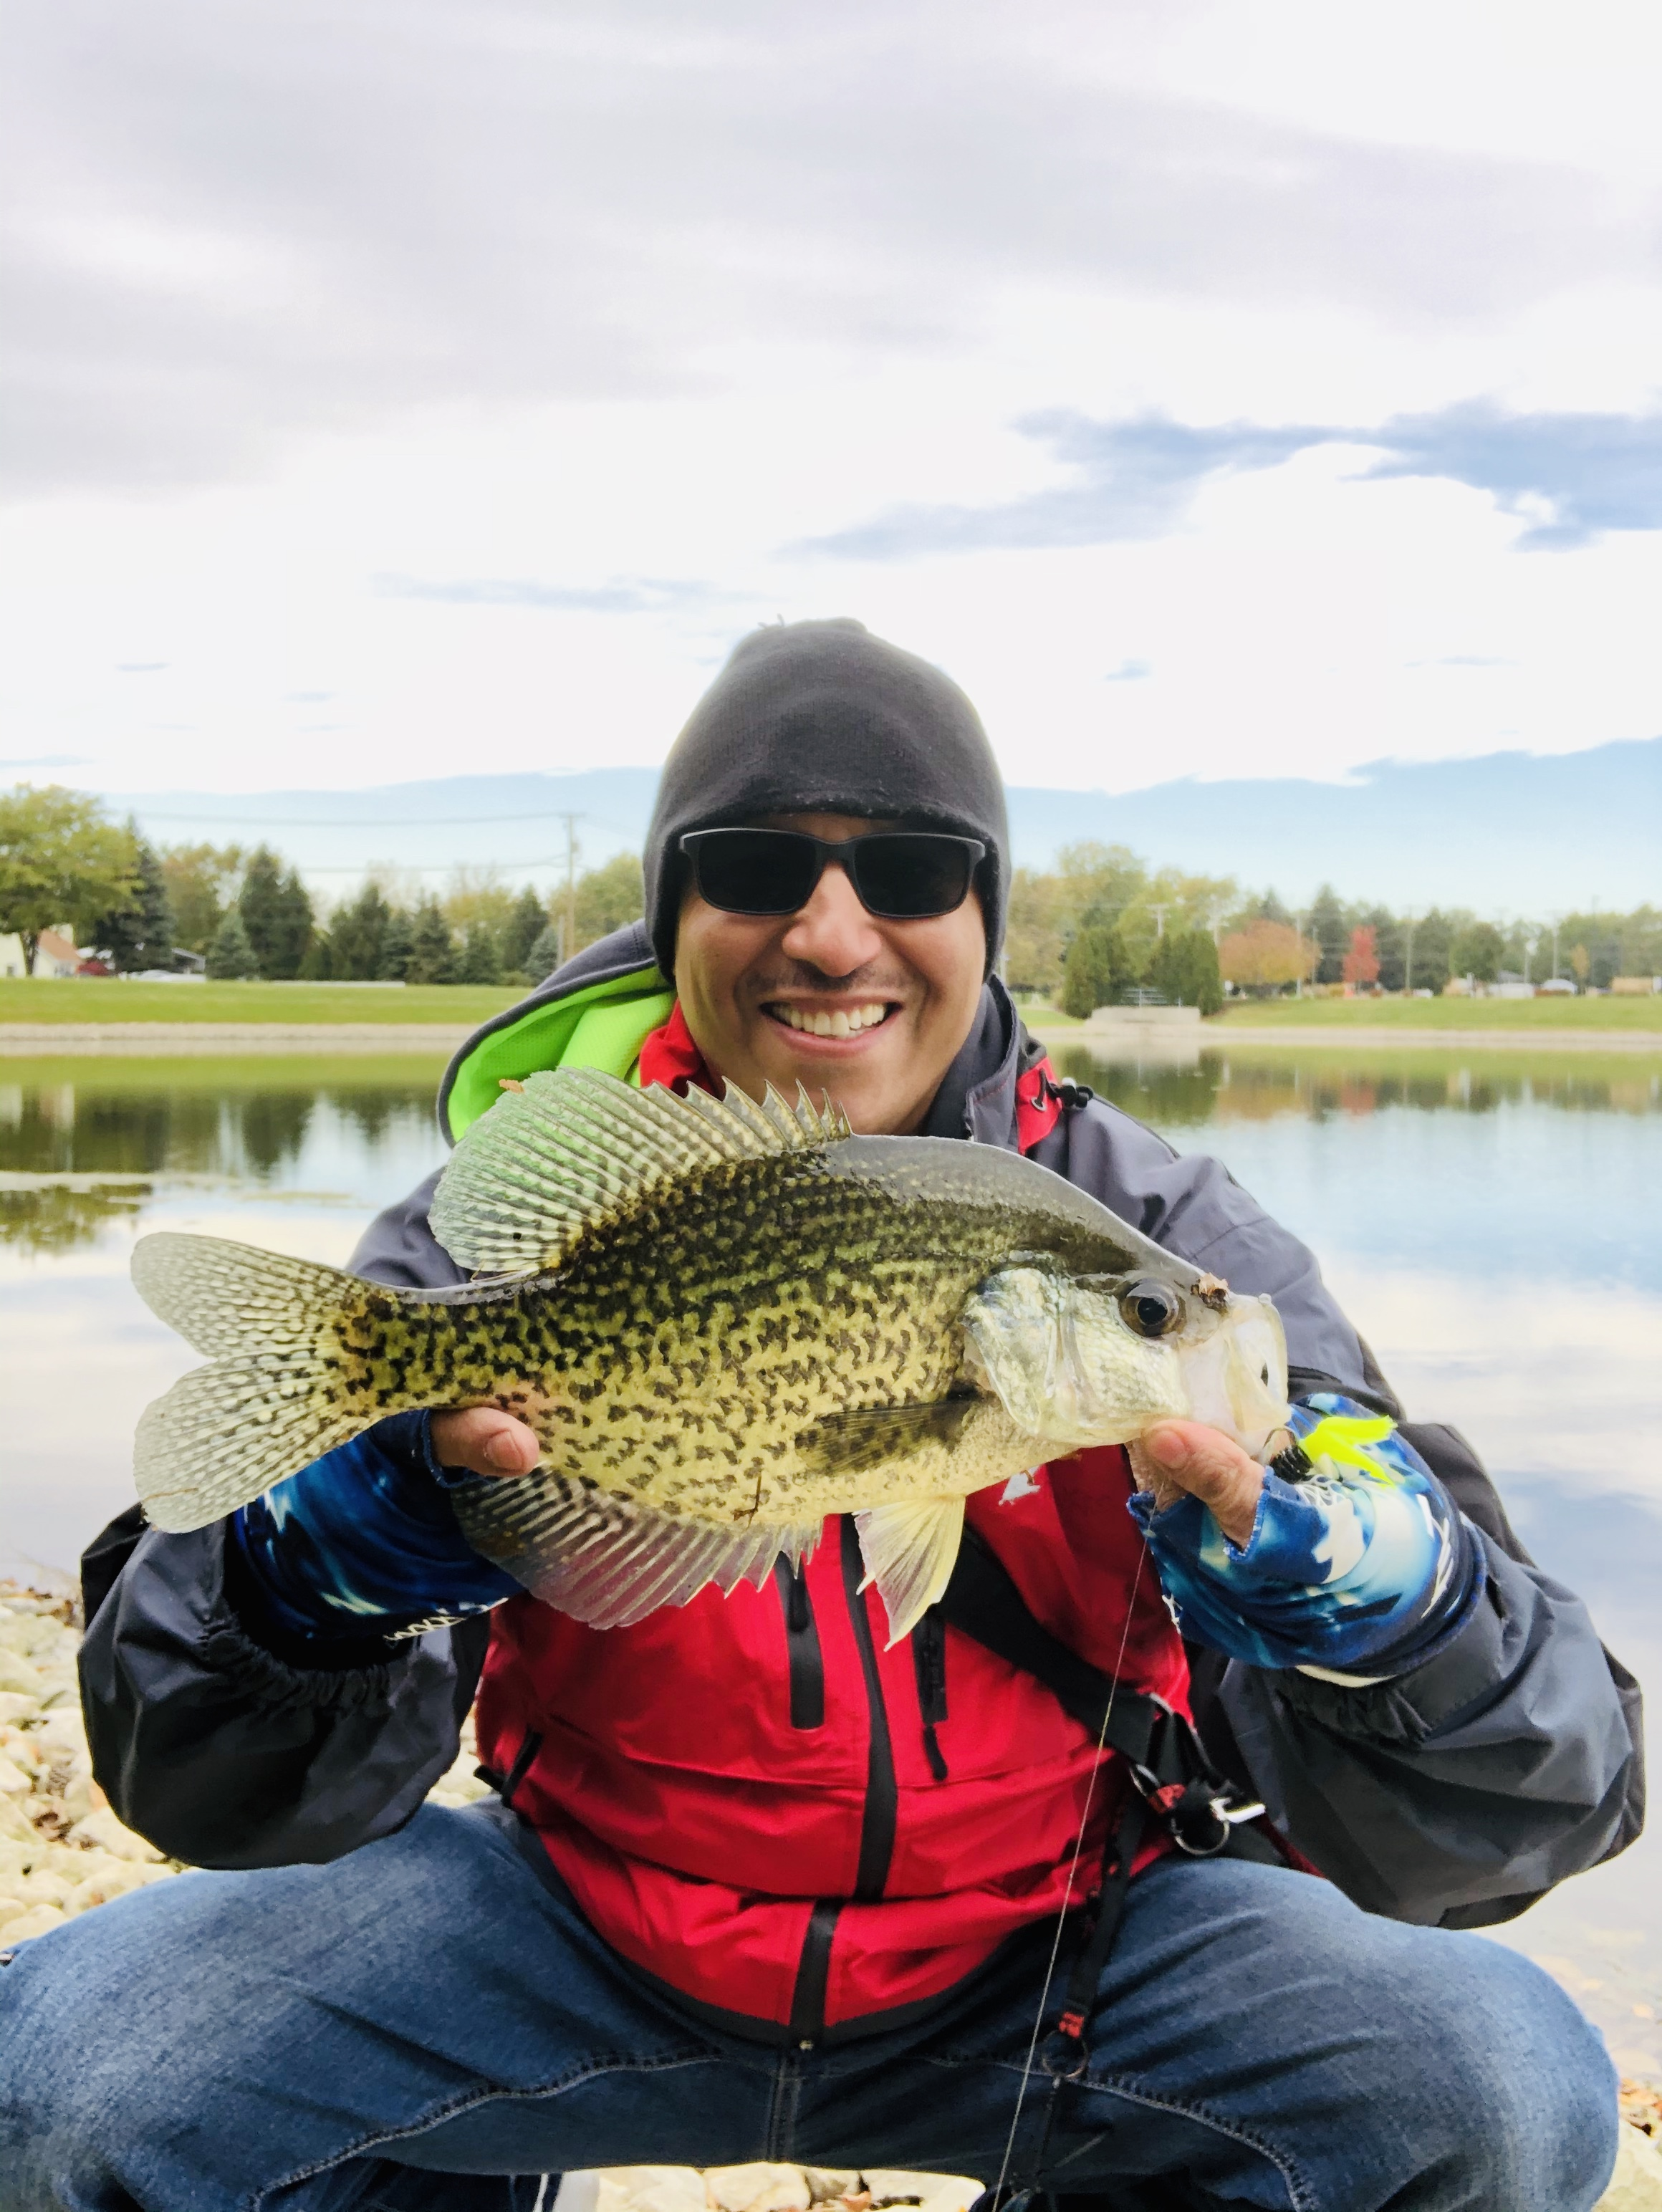 Rico Cantu sent the crappie above from the Lockport area.